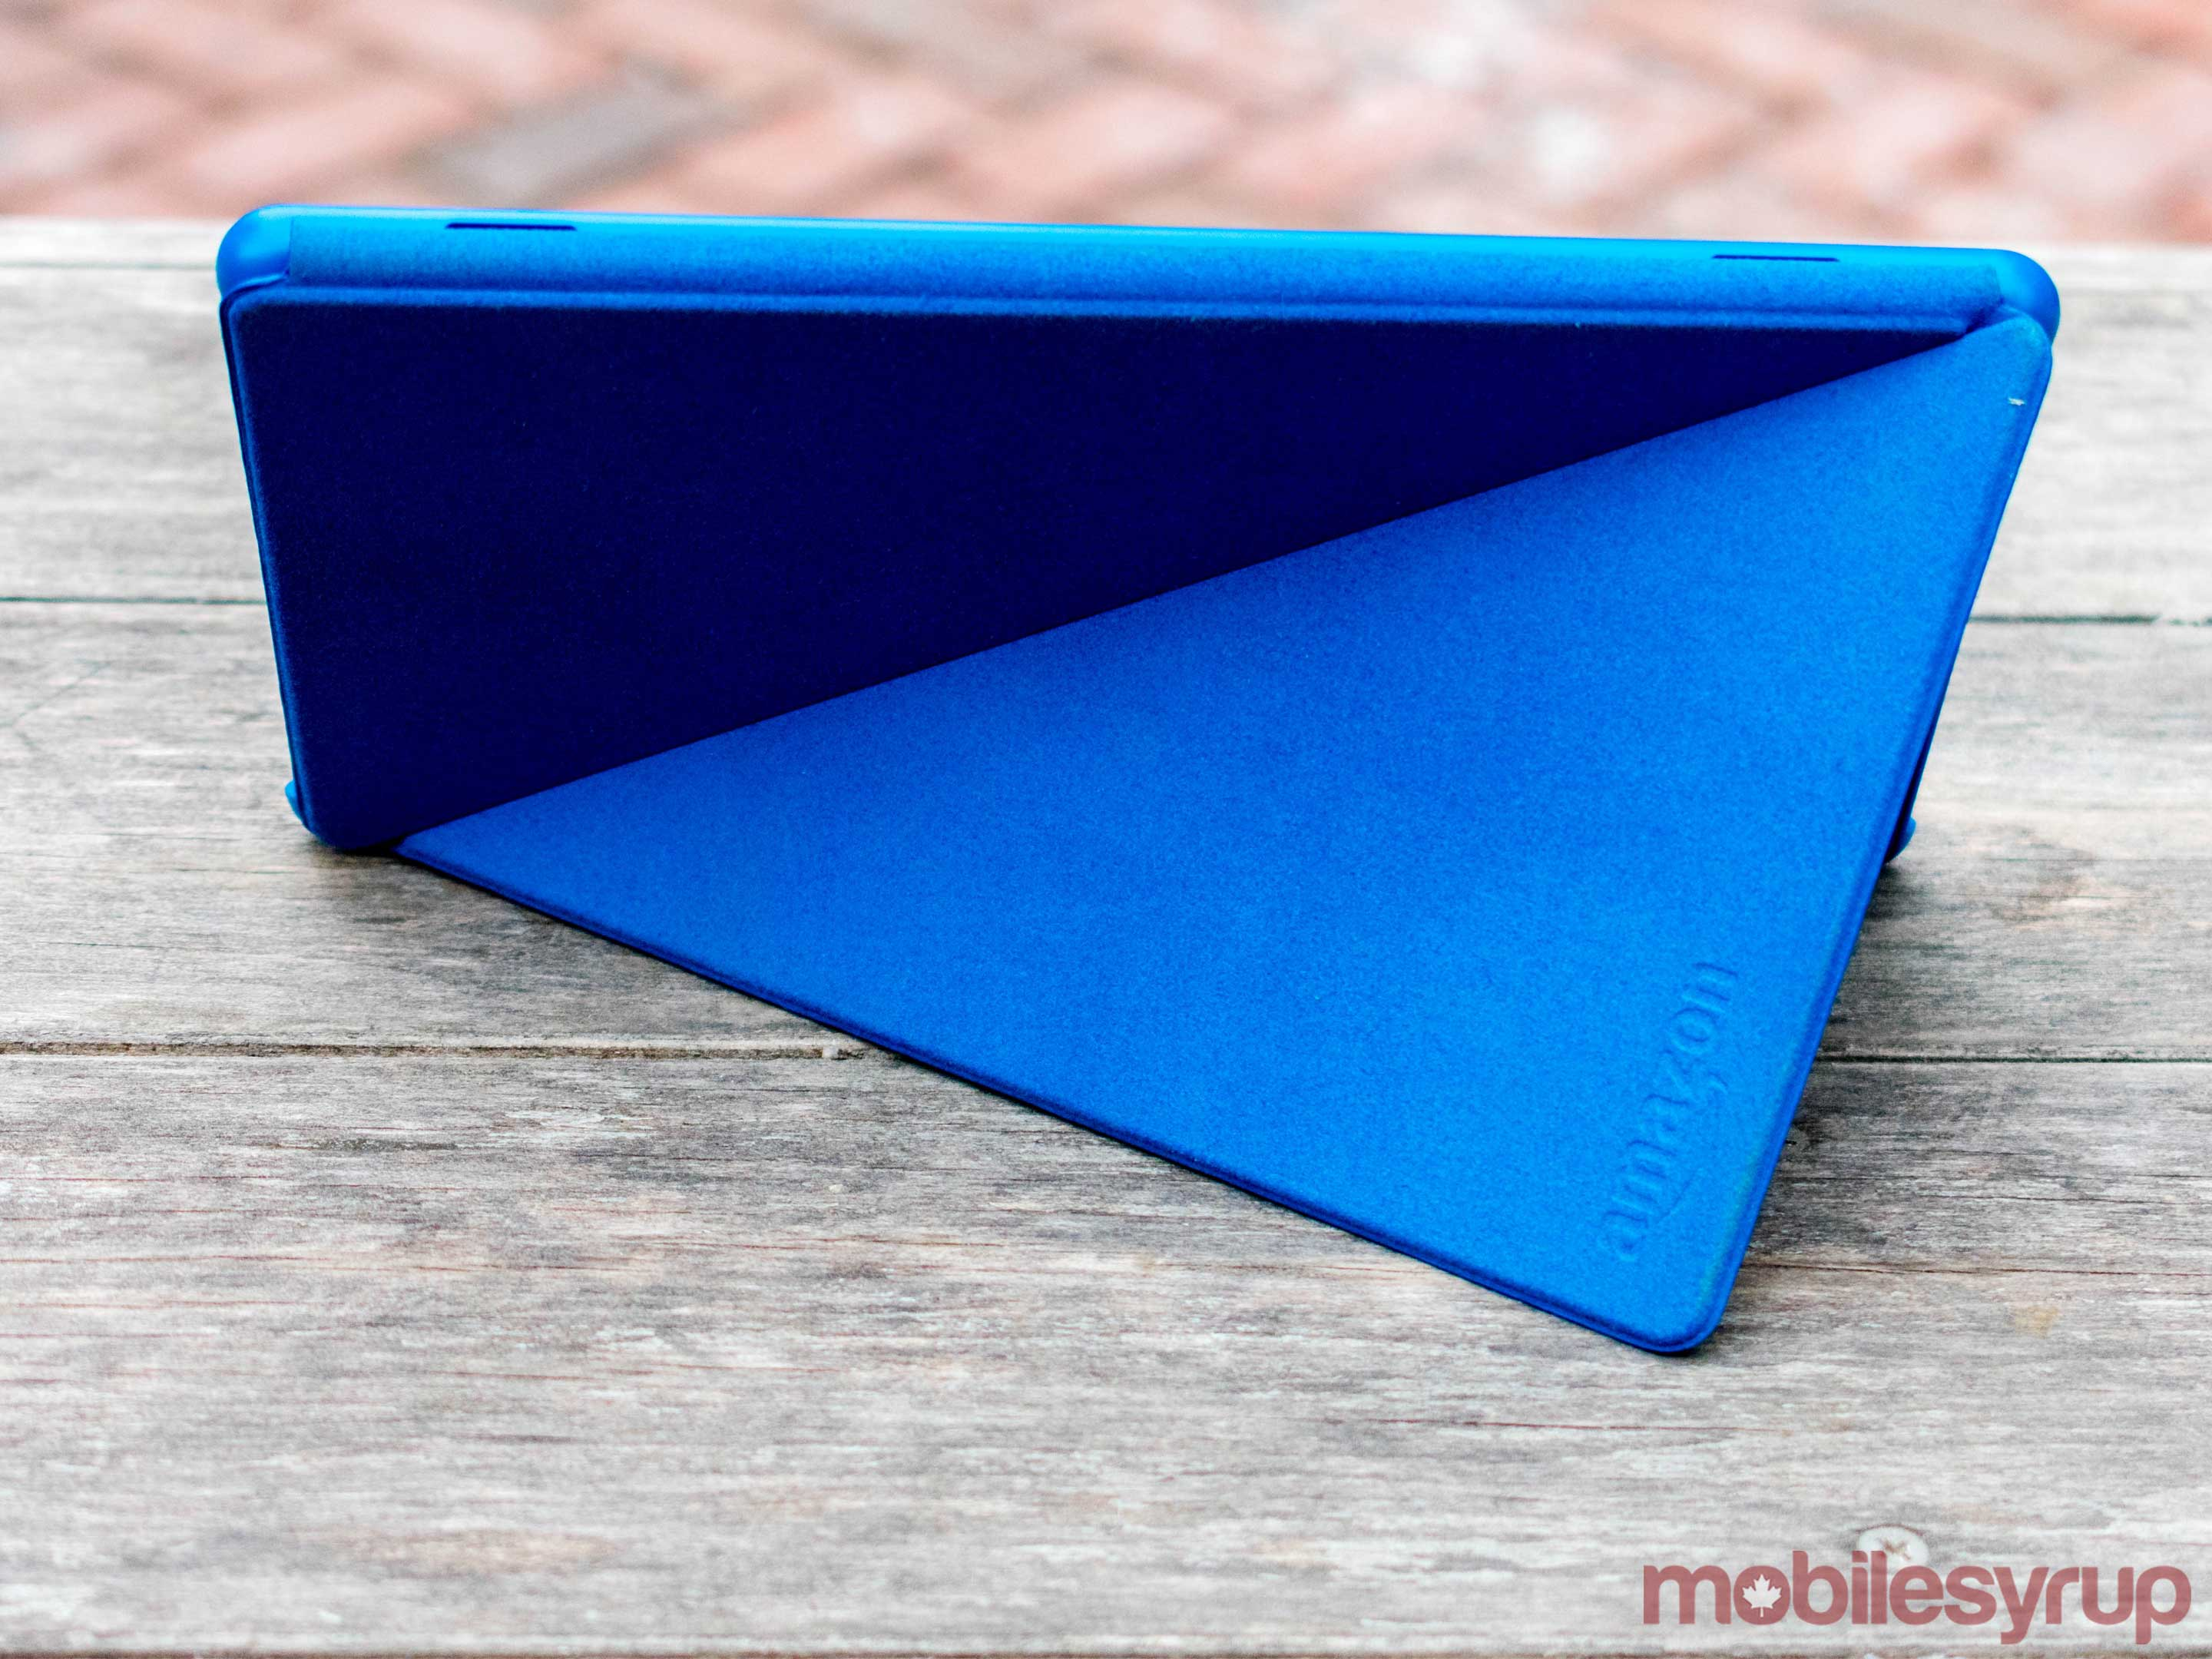 Marine blue Amazon tablet cover.